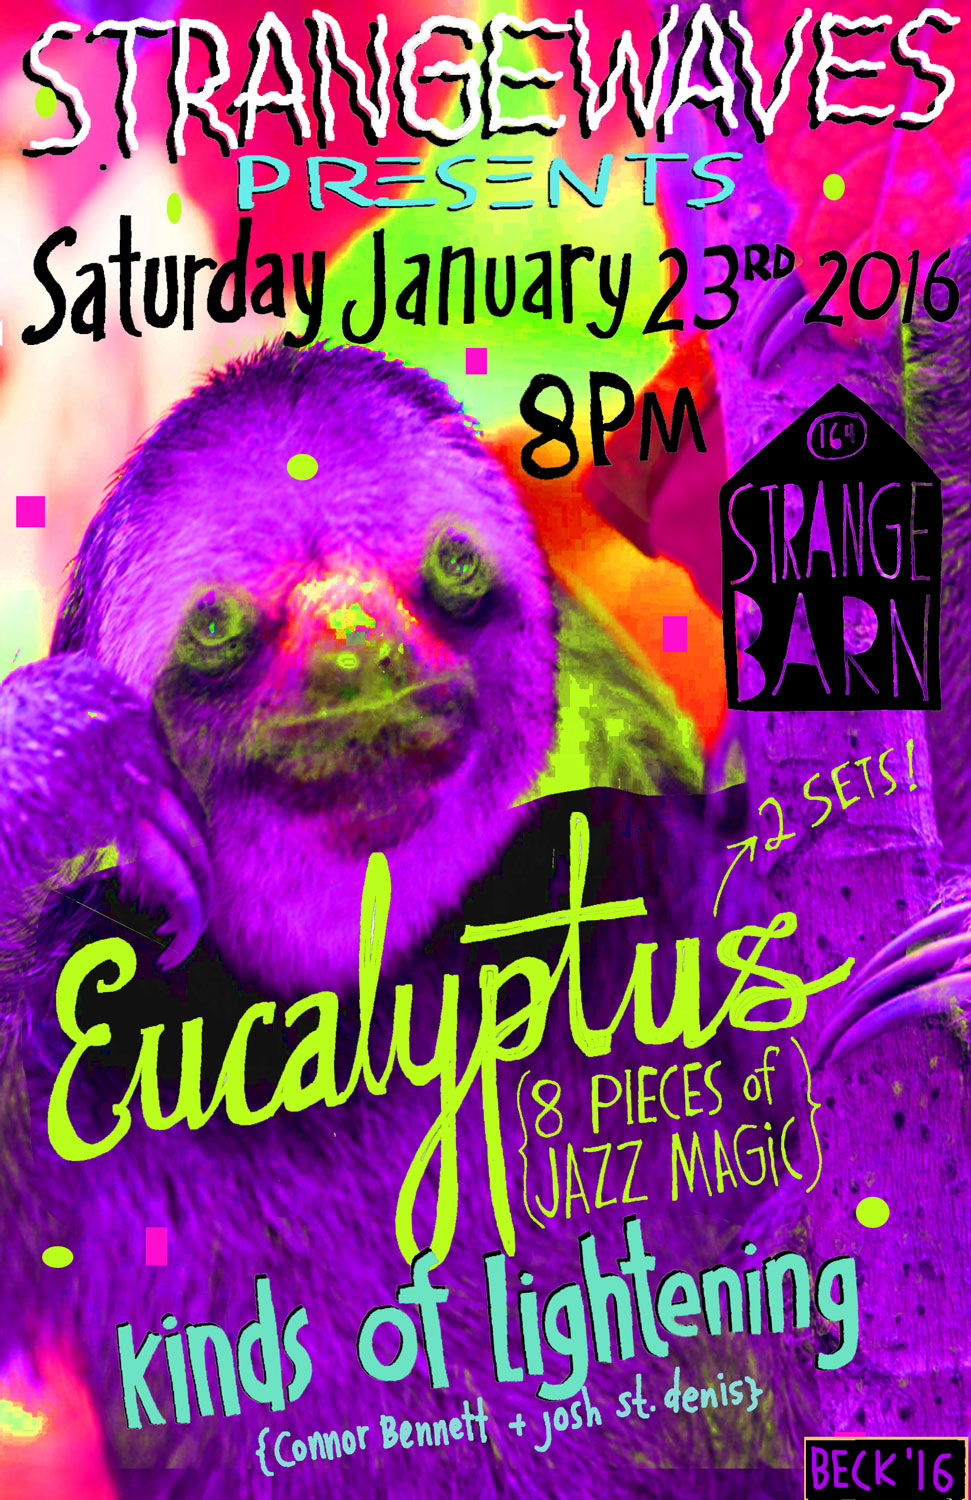 Strangewaves presents Eucalyptus w/ Kinds of Lightening  @Strangebarn